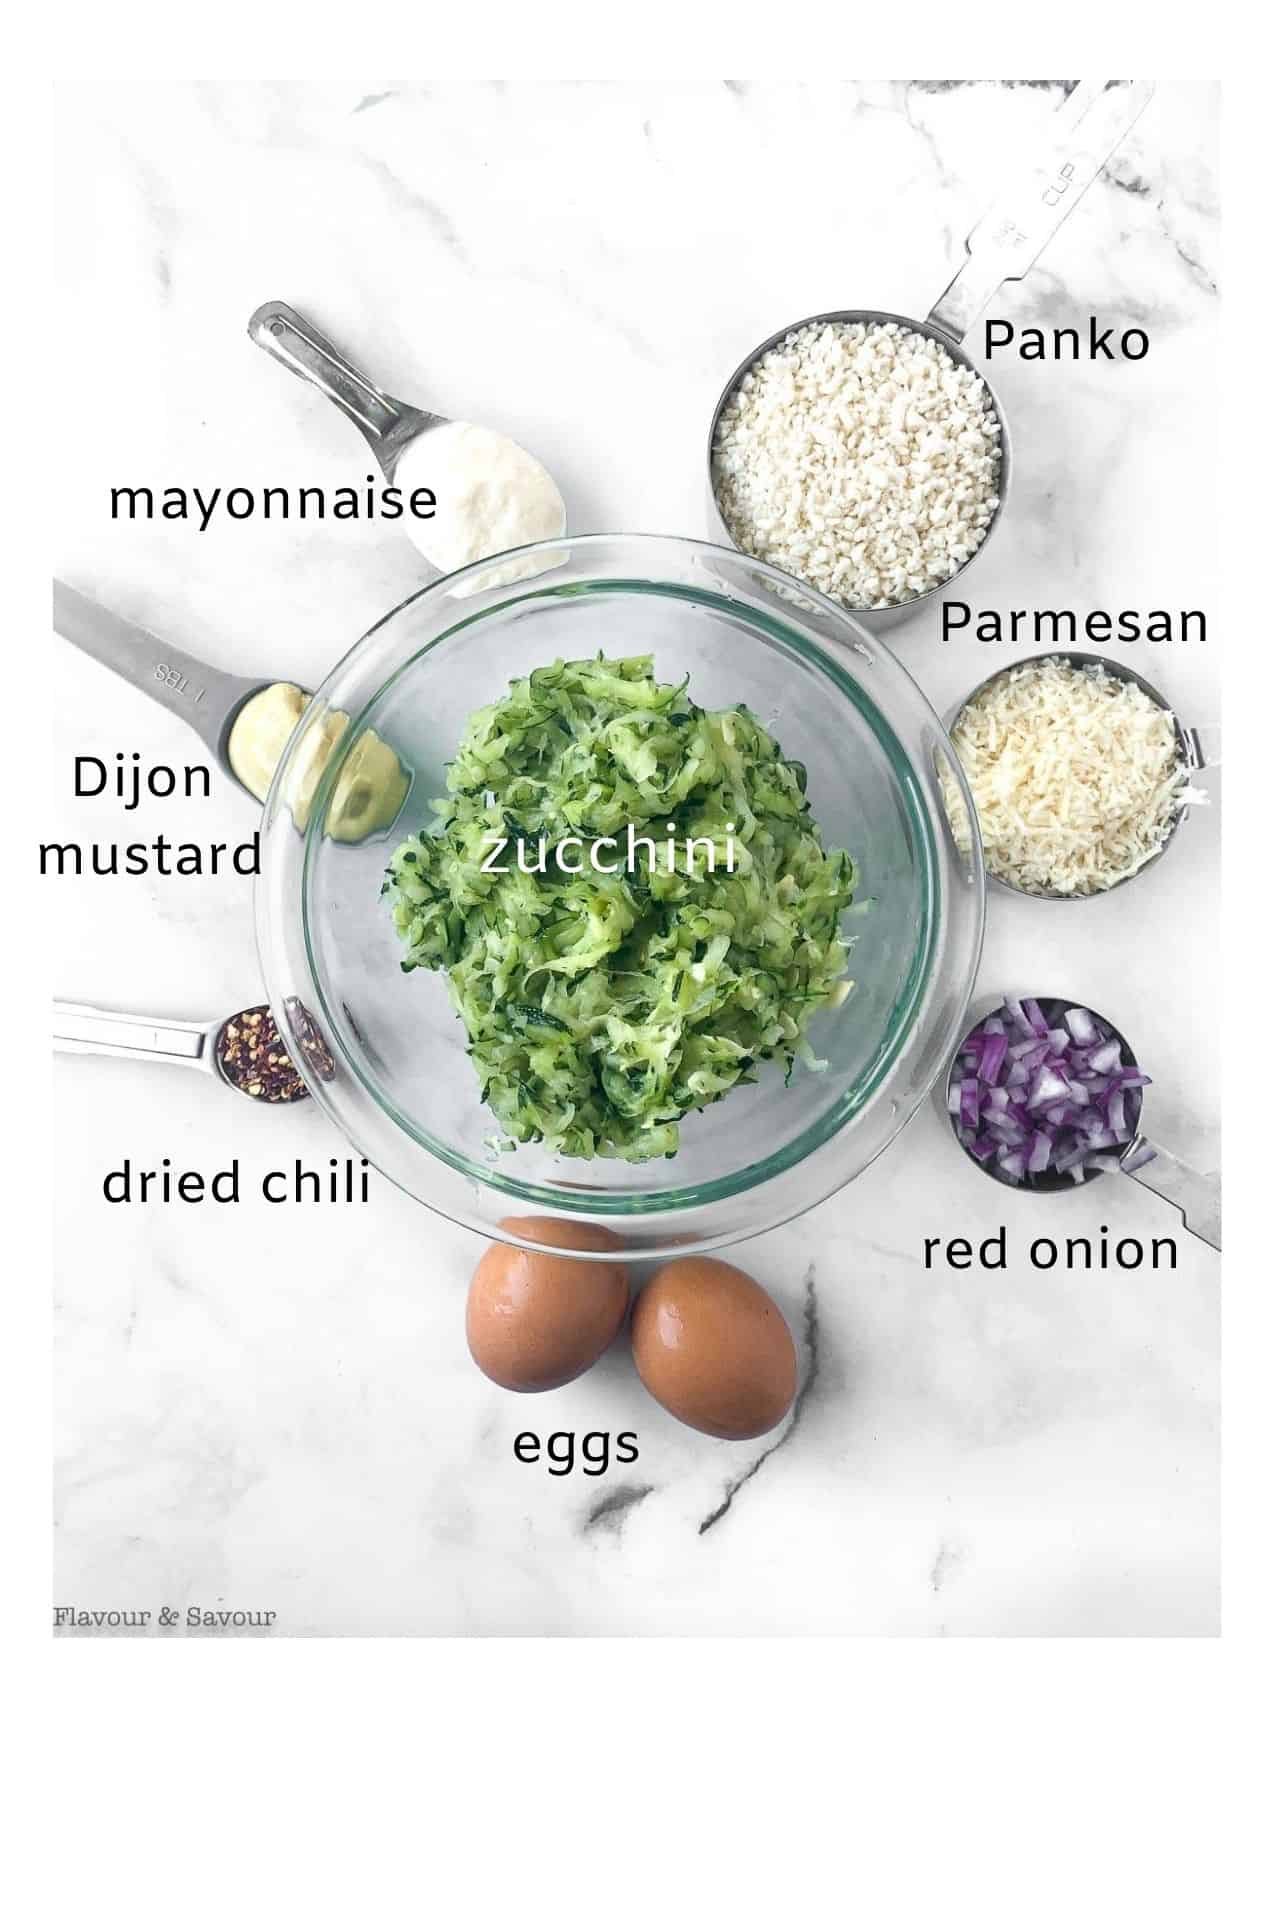 labeled image of ingredients for zucchini patties